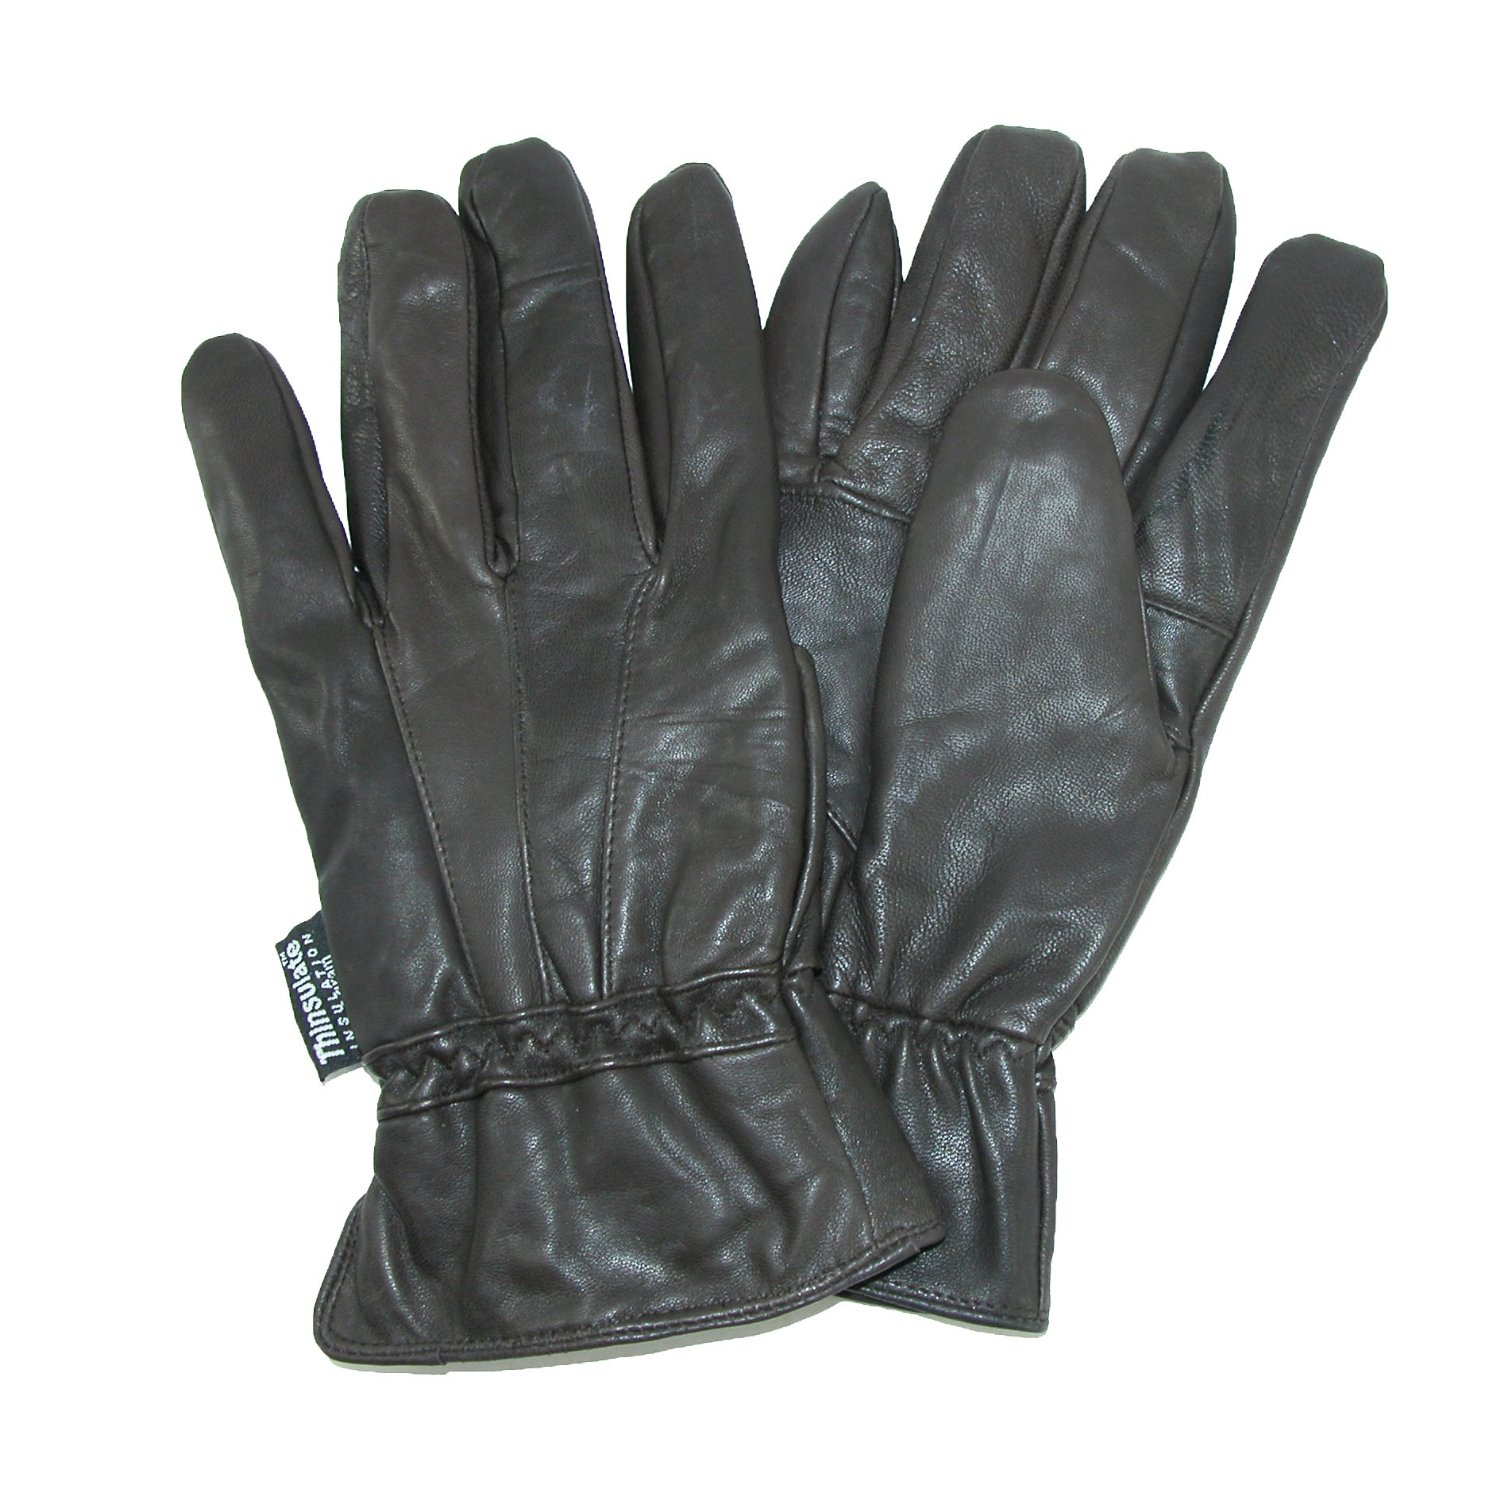 Mens leather gloves thinsulate - Unisex Clothing Shoes Amp Accs Gt Unisex Accessories Gt Gloves Amp Mittens